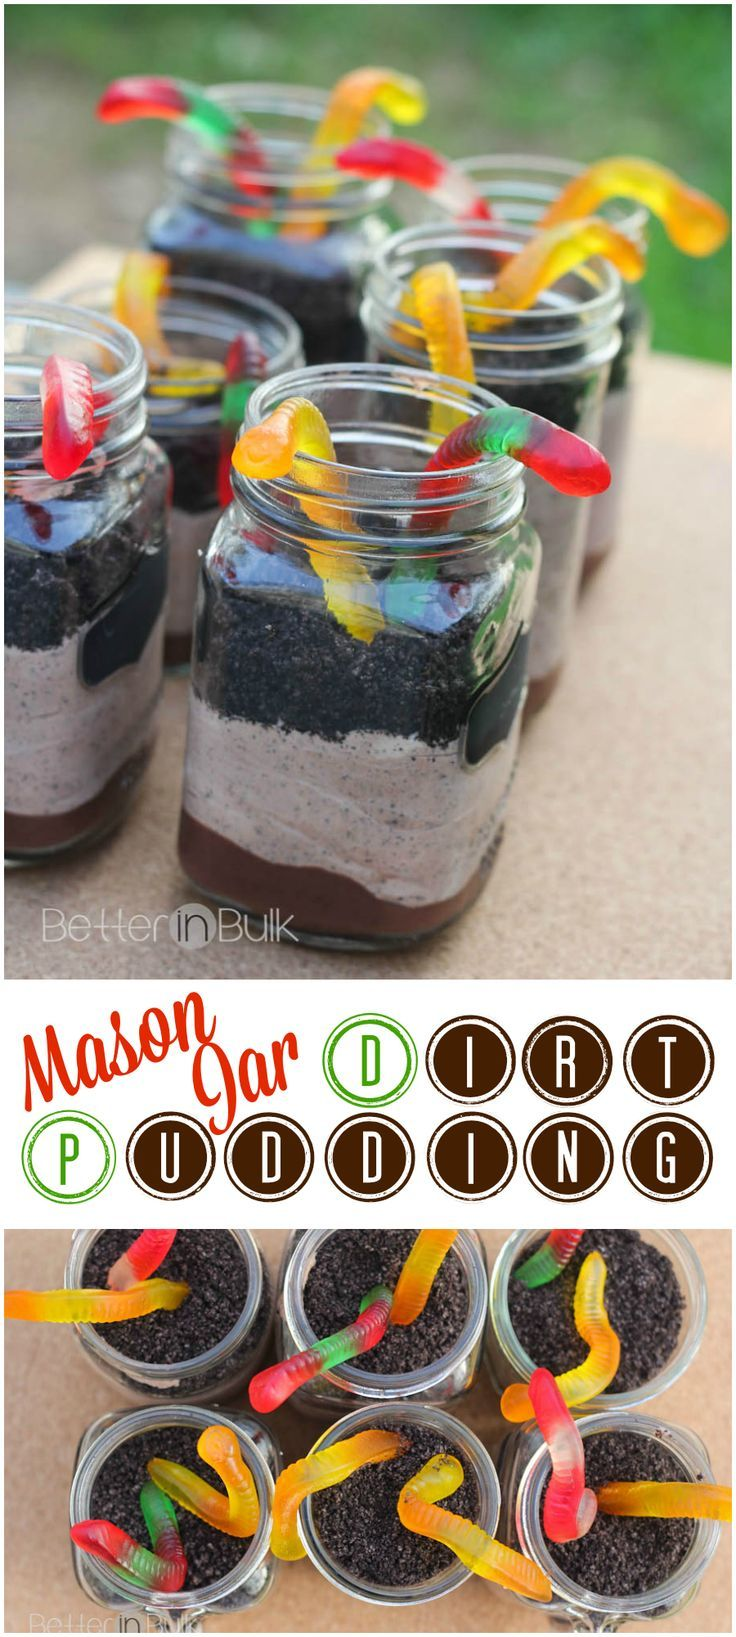 Mason Jar Dirt Pudding with Gummi Worms - a delicious, easy, and kid-pleasing dessert with Oreos, chocolate pudding, and Cool Whip!